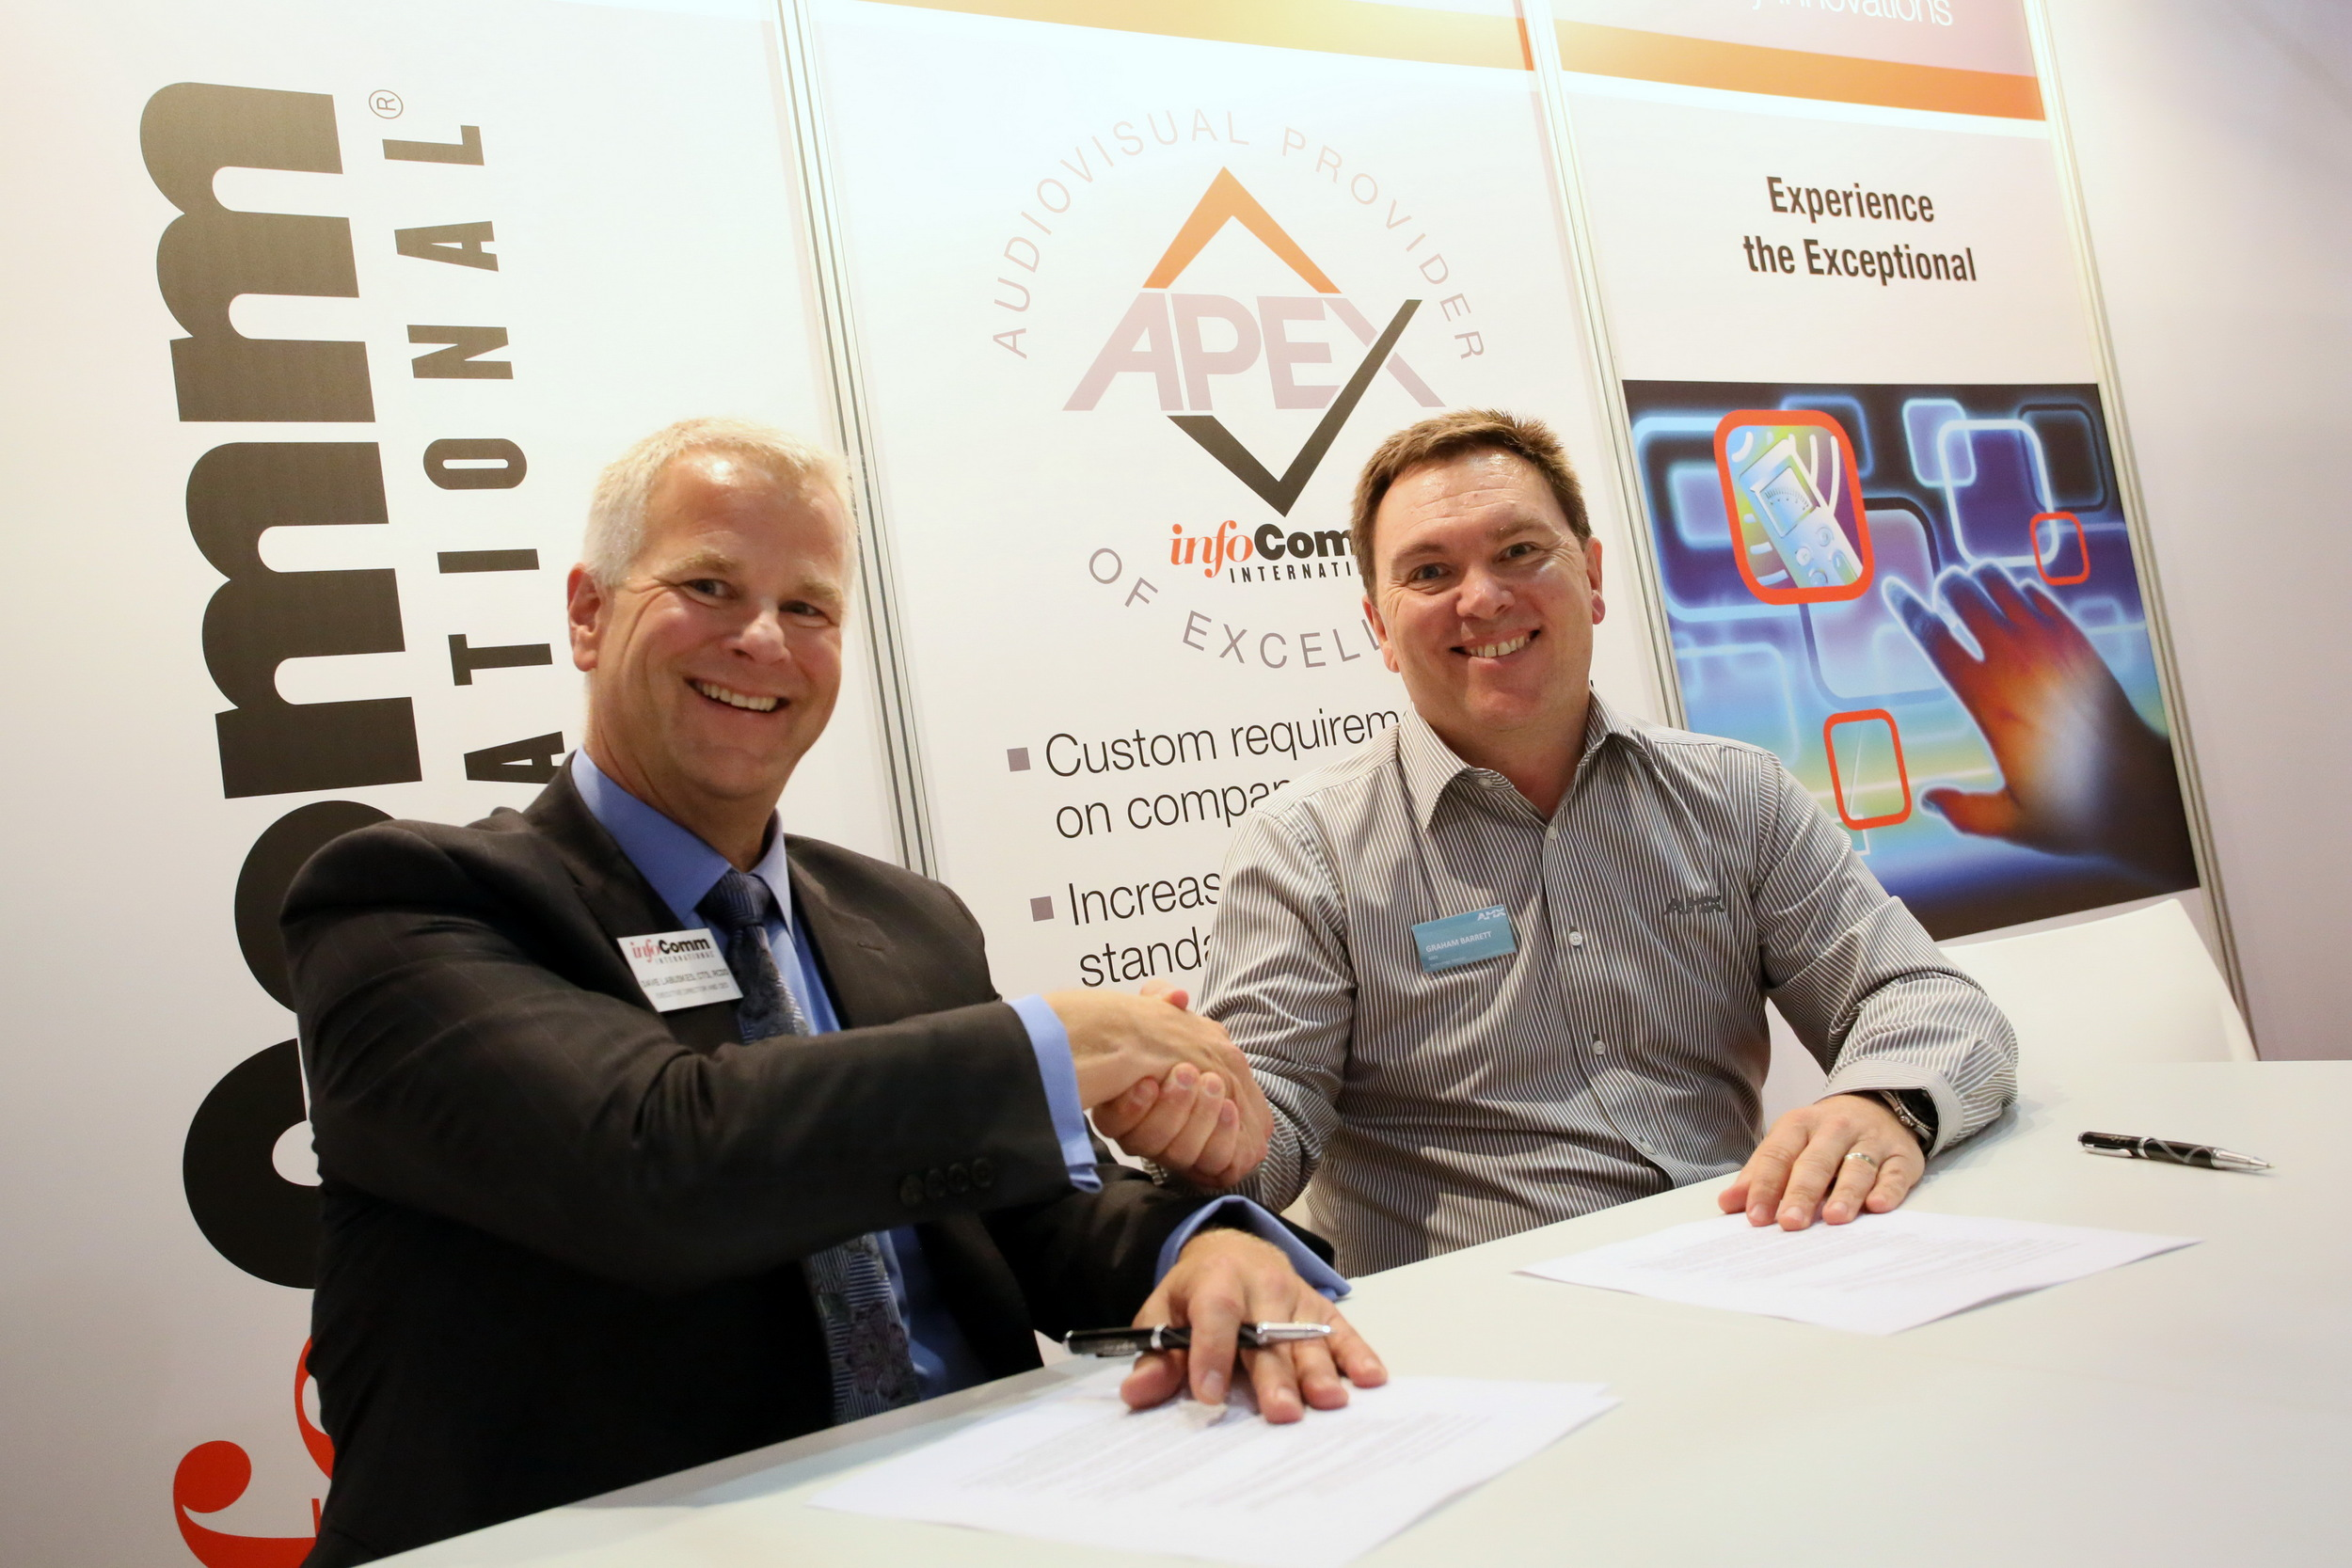 David Labuskes, InfoComm CEO and Graham Barrett, AMX Technology Director signing the NAVS agreement